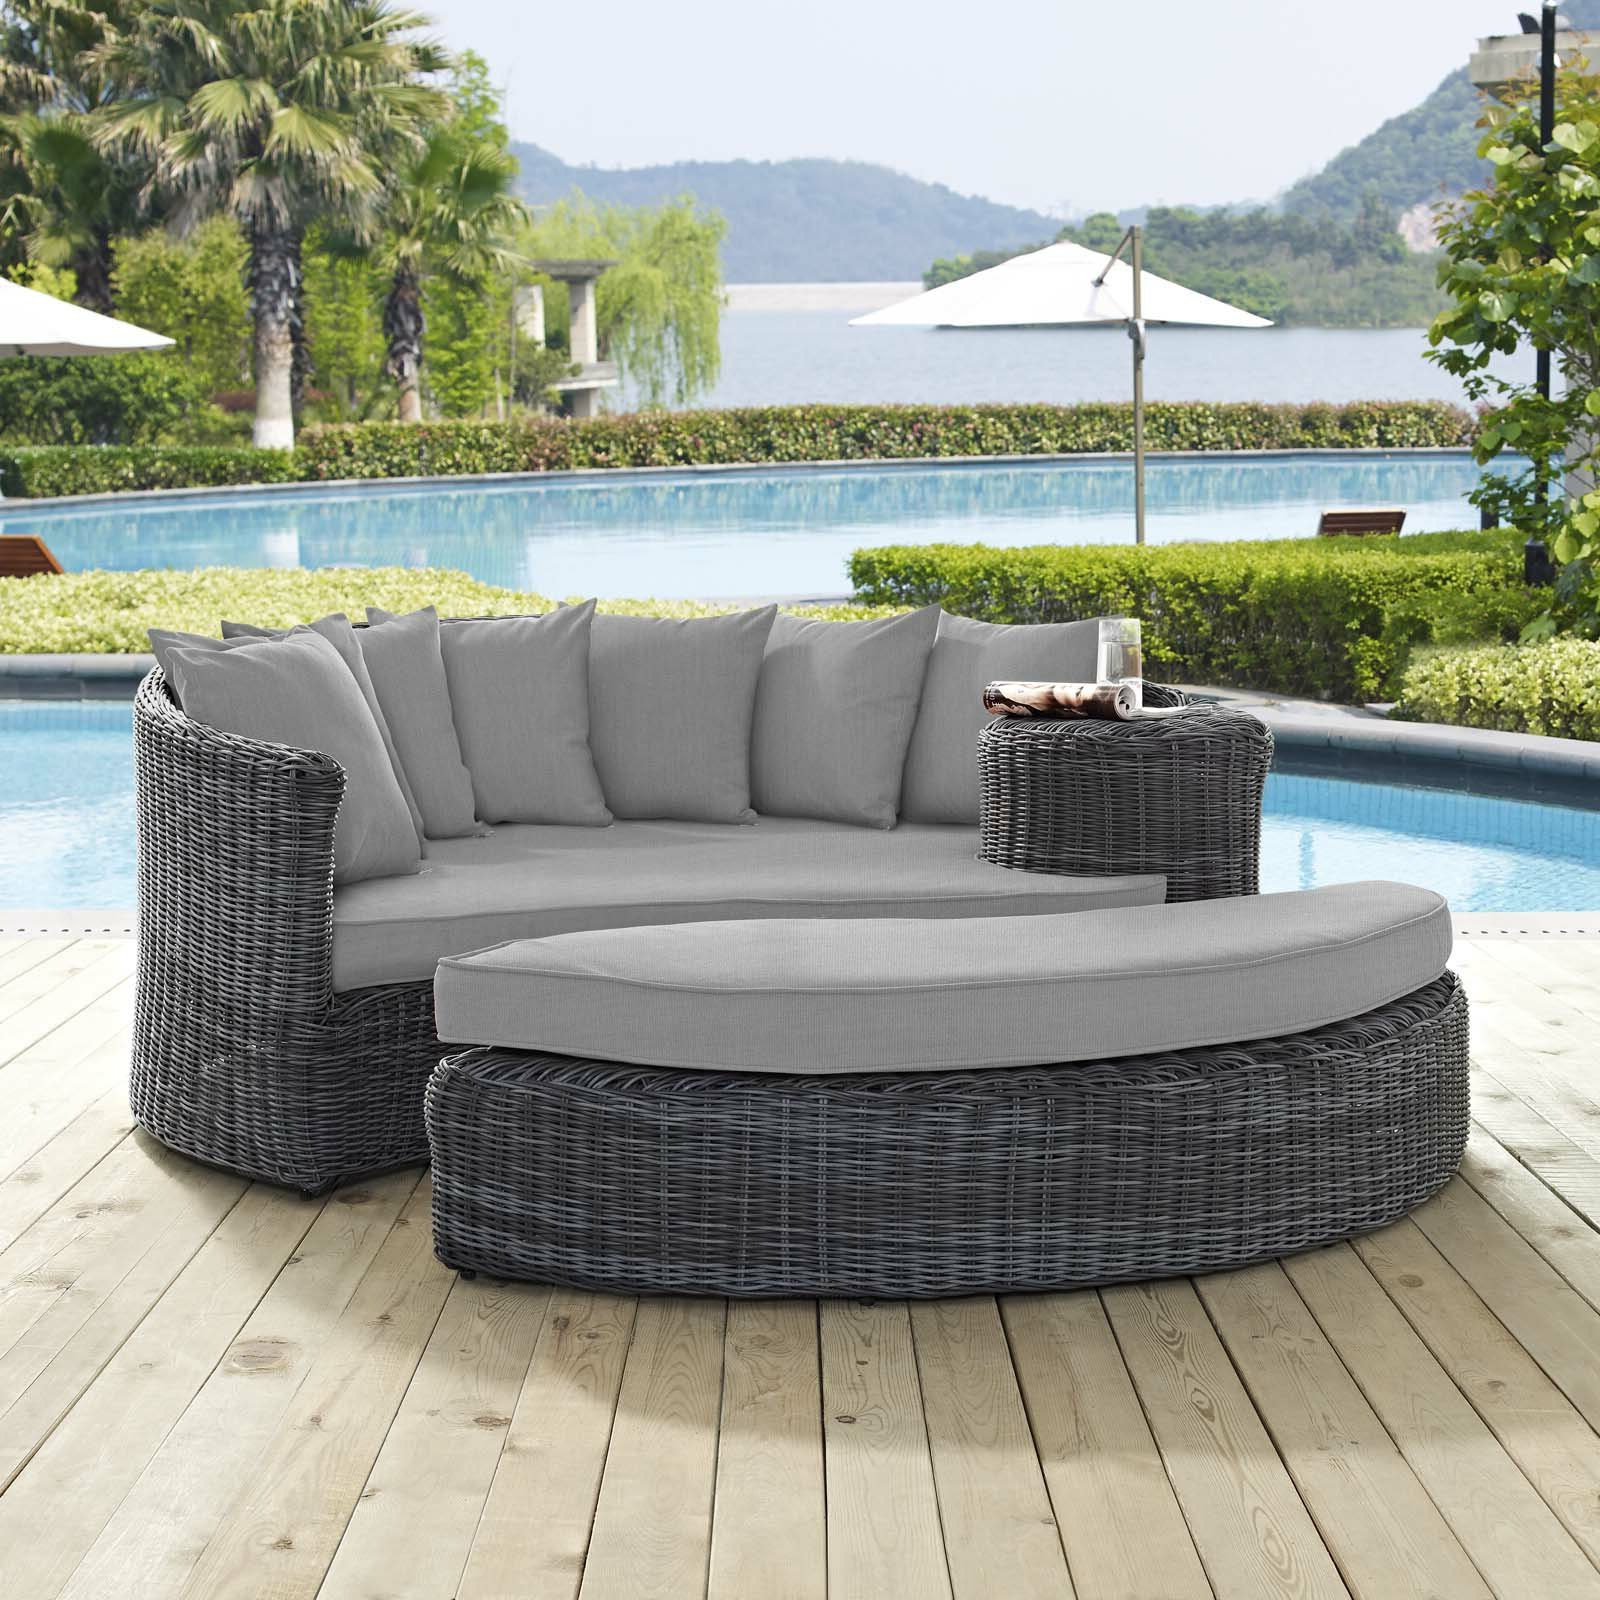 Brentwood Canopy Patio Daybeds With Cushions With Widely Used Keiran Patio Daybed With Cushions (View 10 of 25)